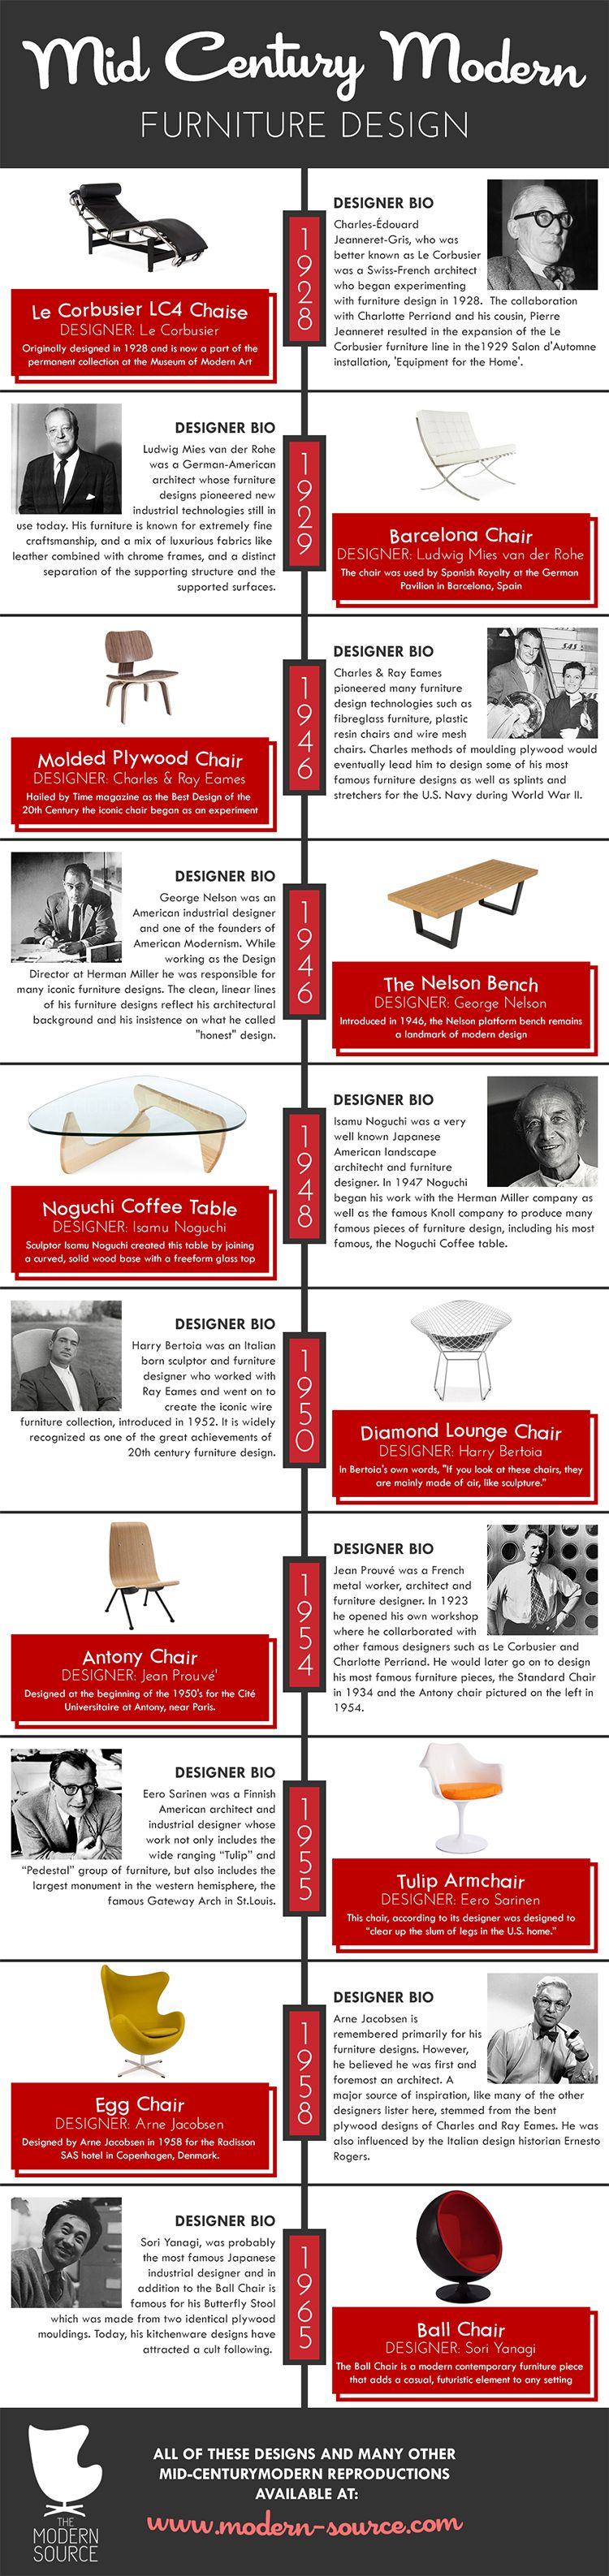 A History of Mid Century Modern Furniture Design. A History of Mid Century Modern Furniture Design   Furniture